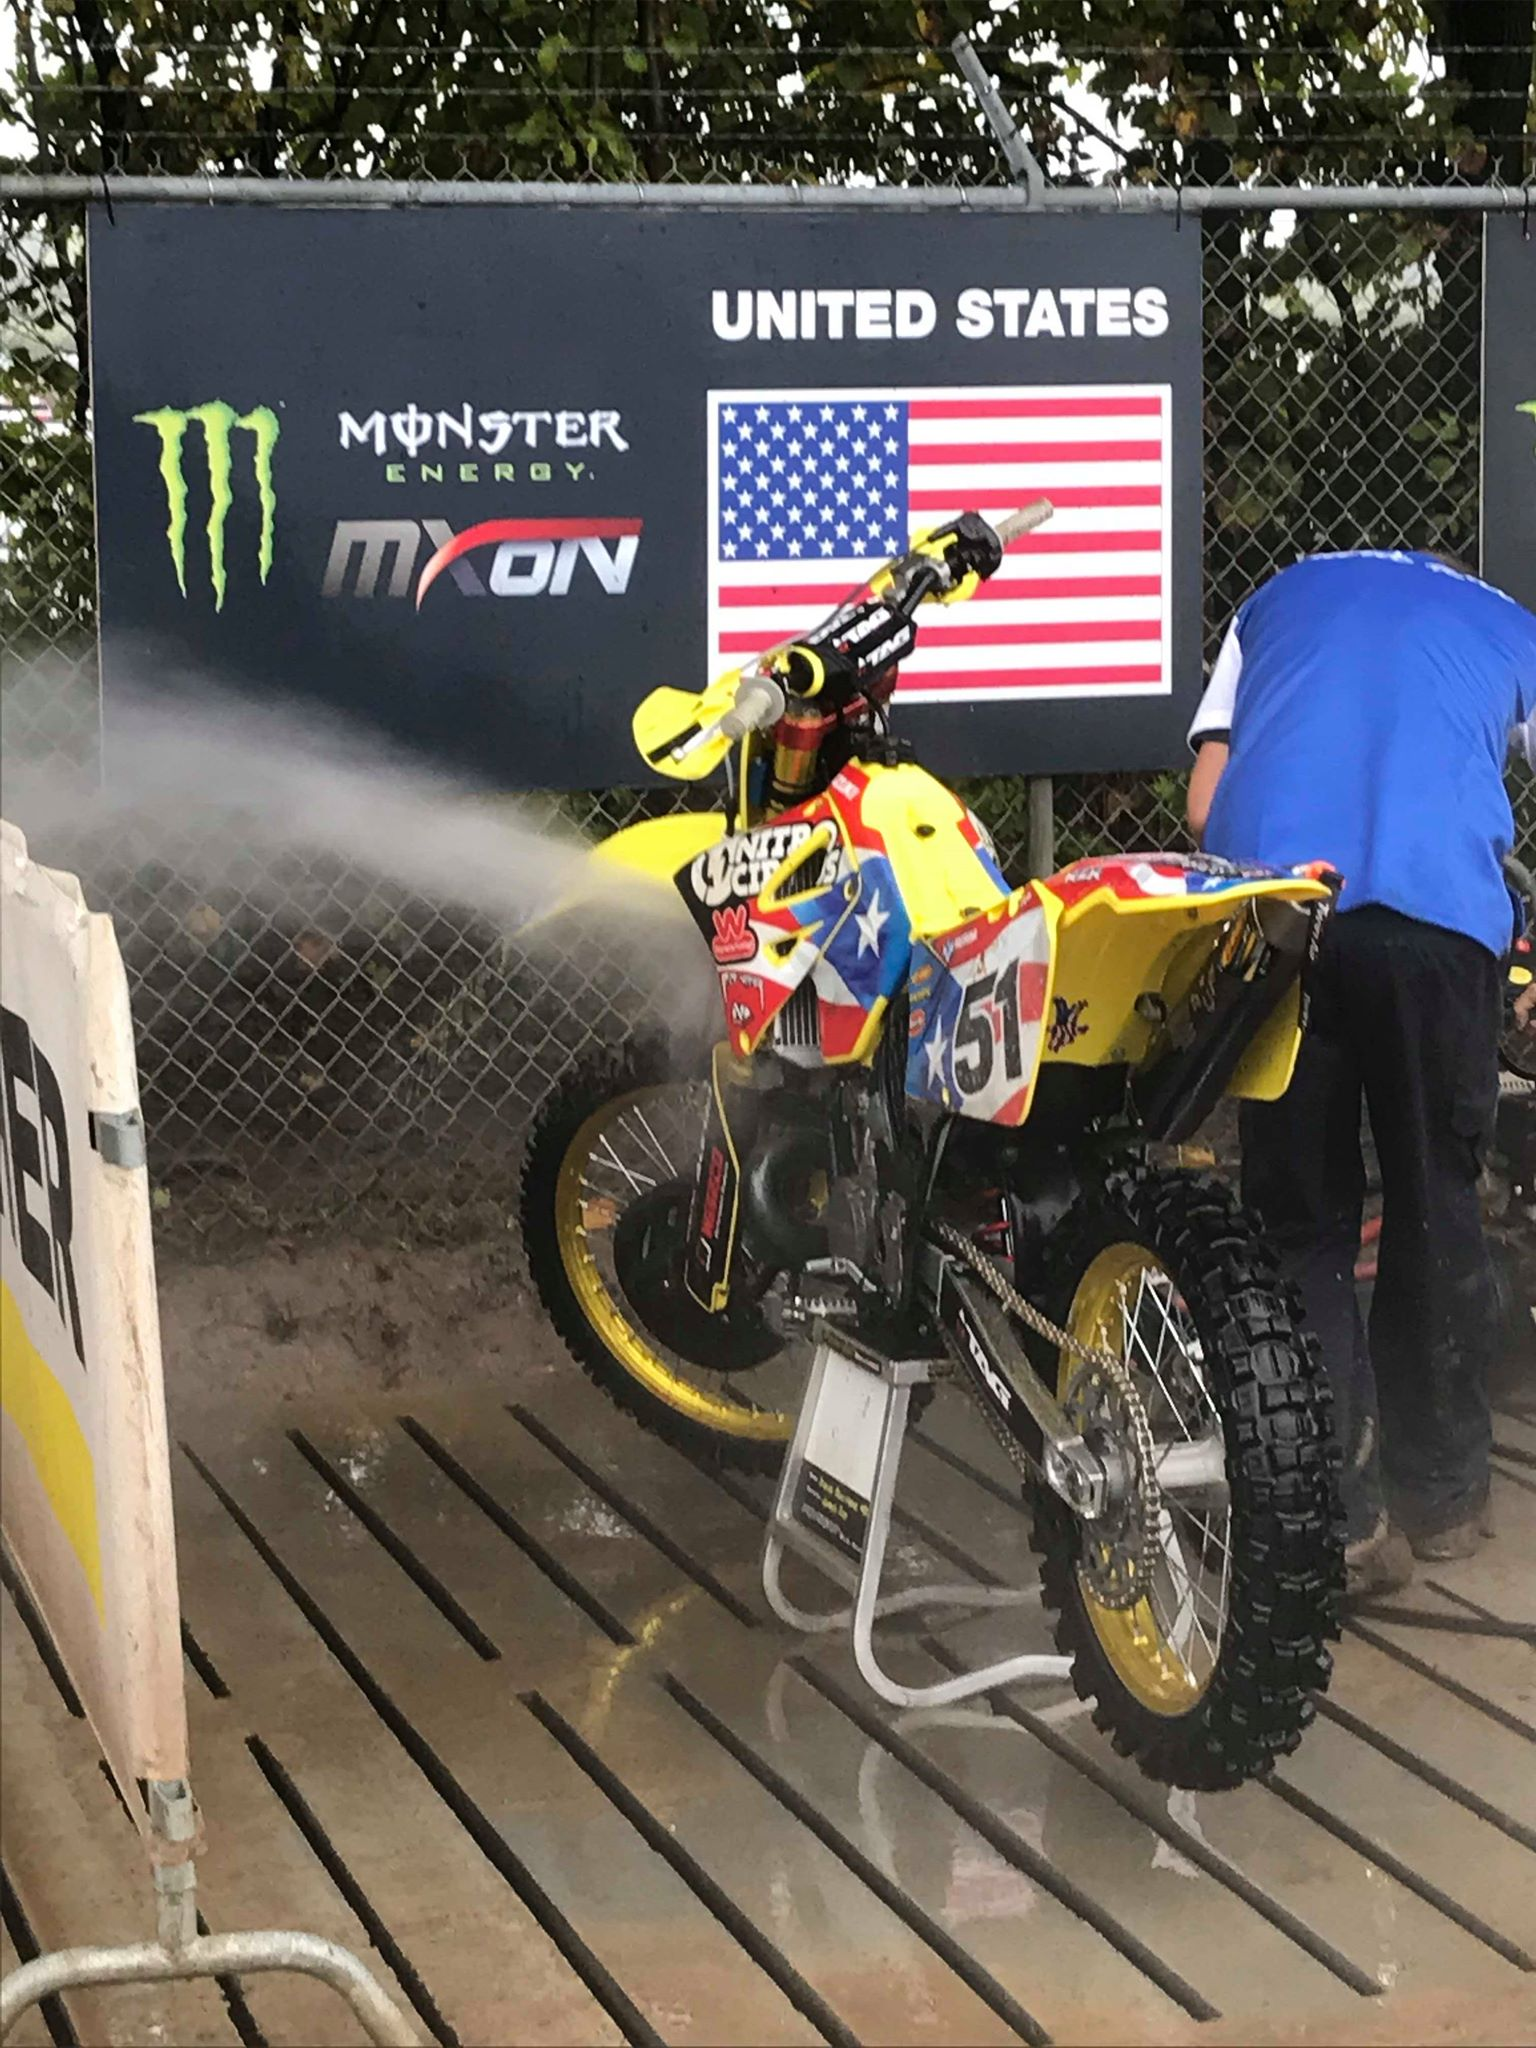 TP199 had quite possibly the most famous 2 stroke of all time absolutely singing around the track. After a much needed wash, the RM250 was primed and ready to ride.